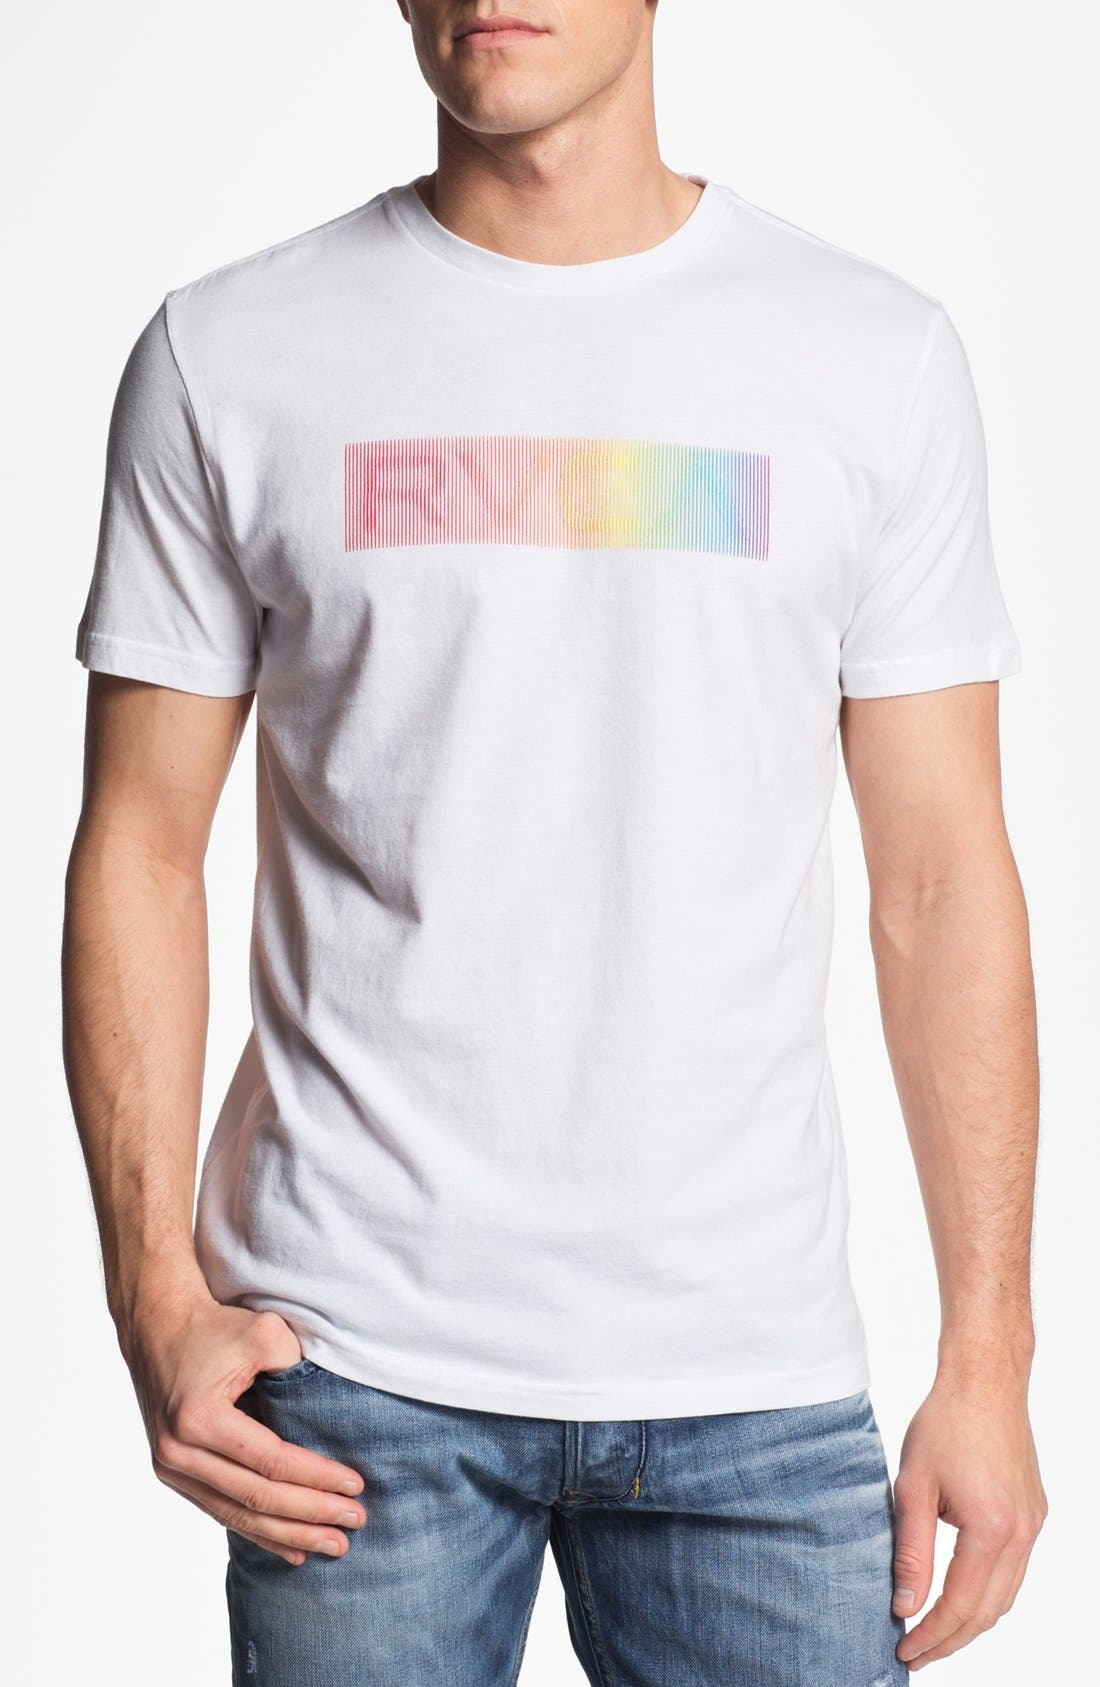 Alternate Image 1 Selected - RVCA 'Illusions' Graphic T-Shirt